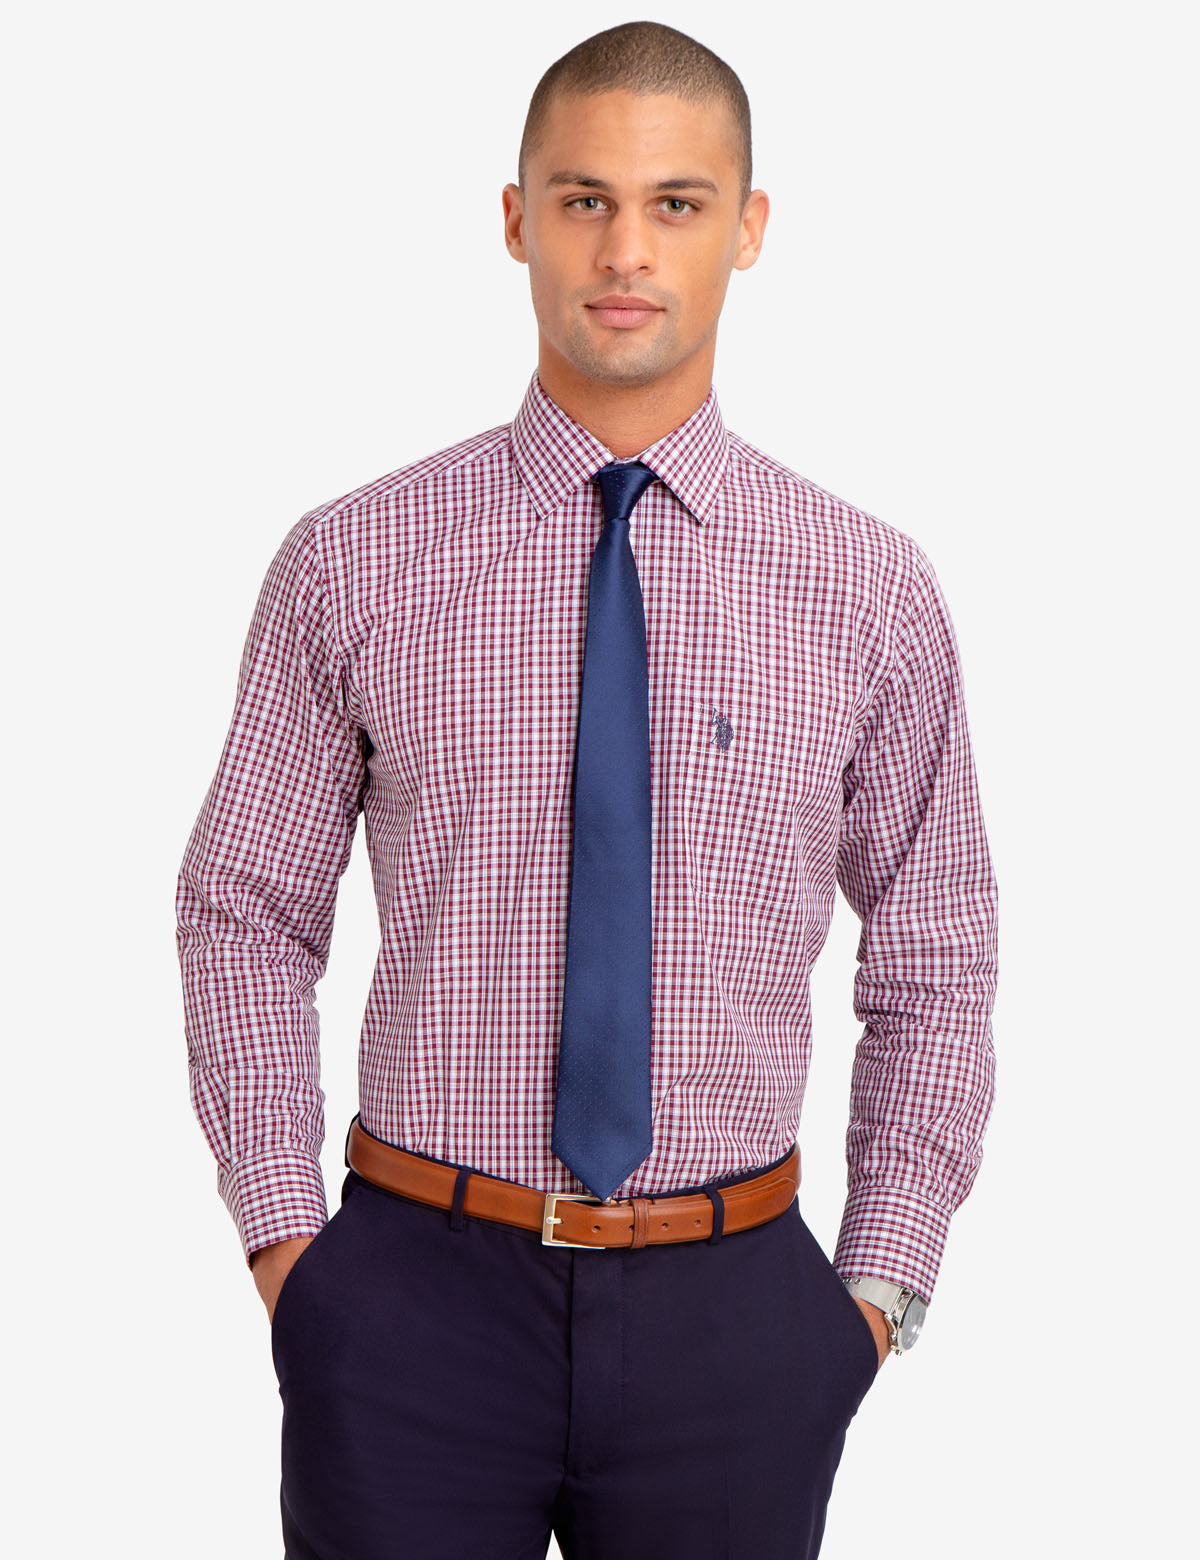 PLAID DRESS SHIRT - U.S. Polo Assn.